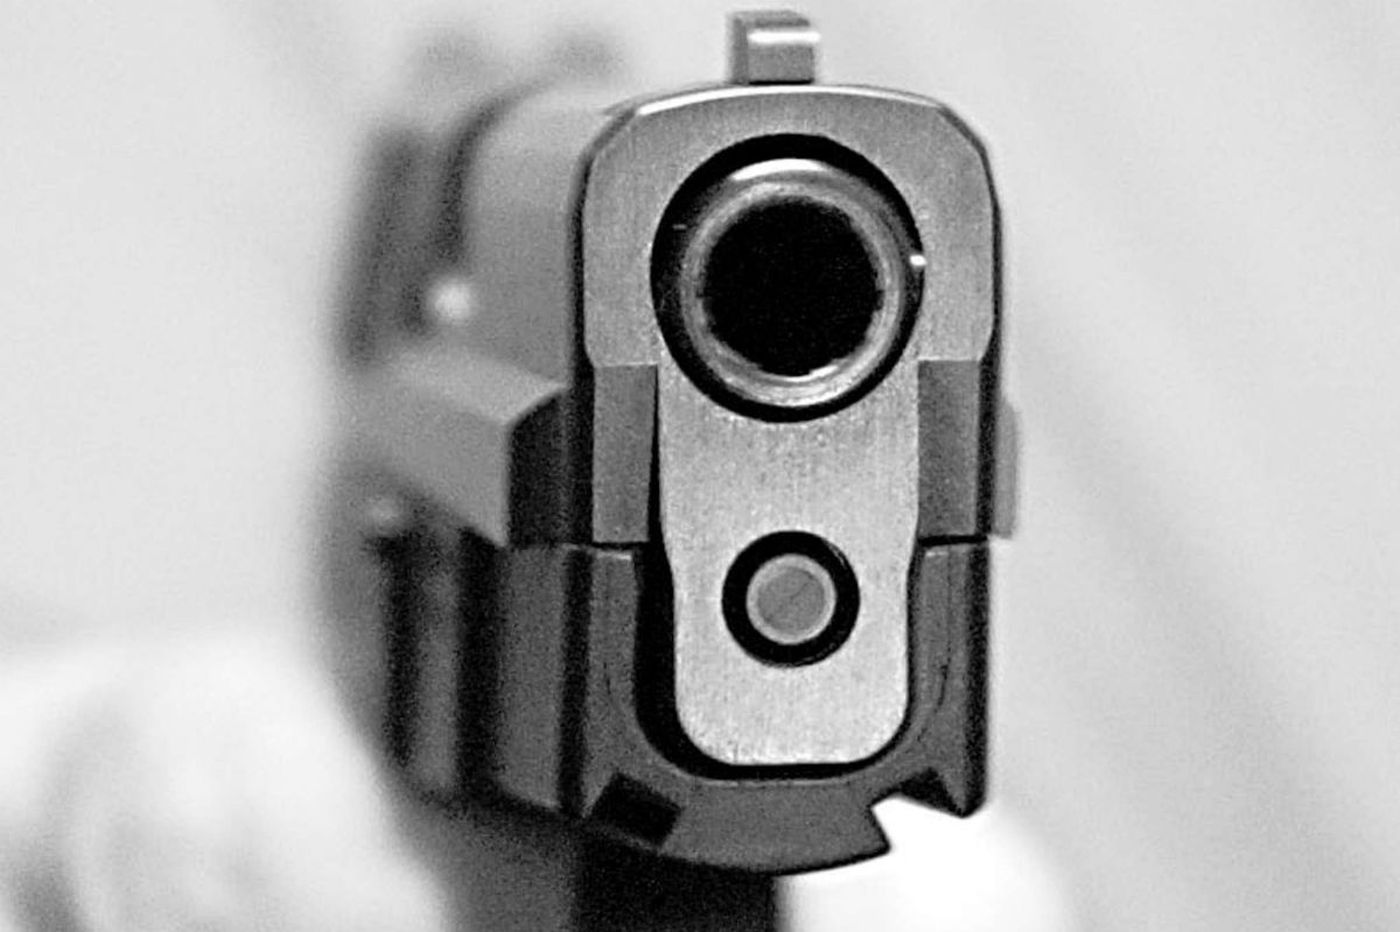 Inquirer Editorial: Guns, poverty equal violence